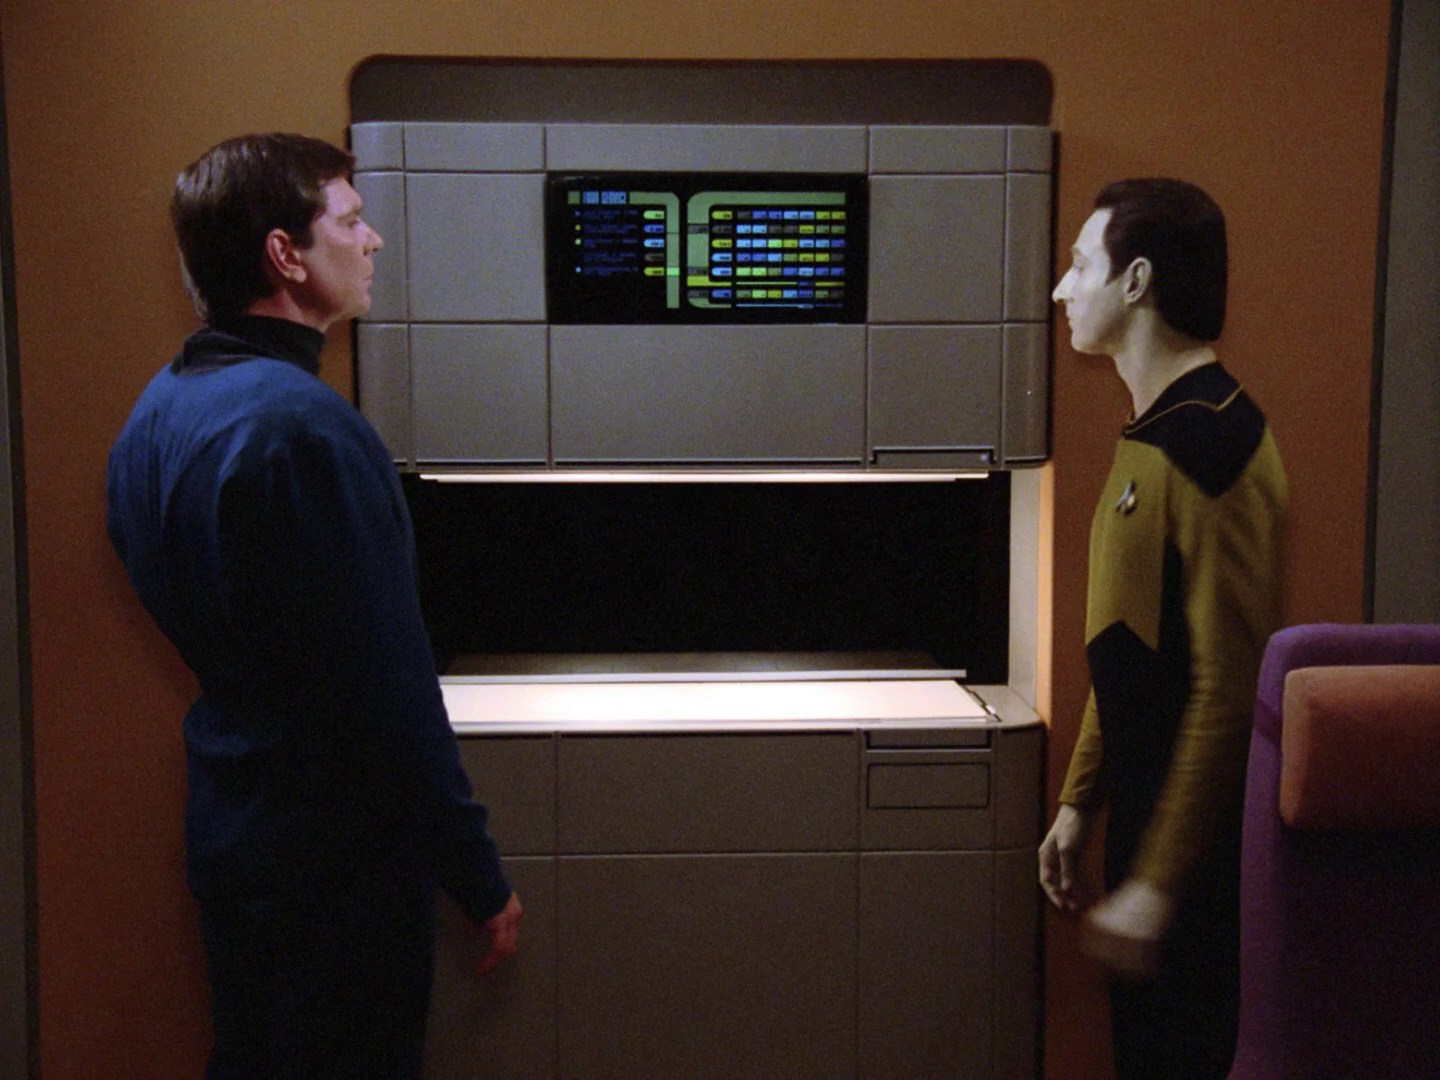 3D printing, or rapid prototyping, moves out of scifi and into reality.